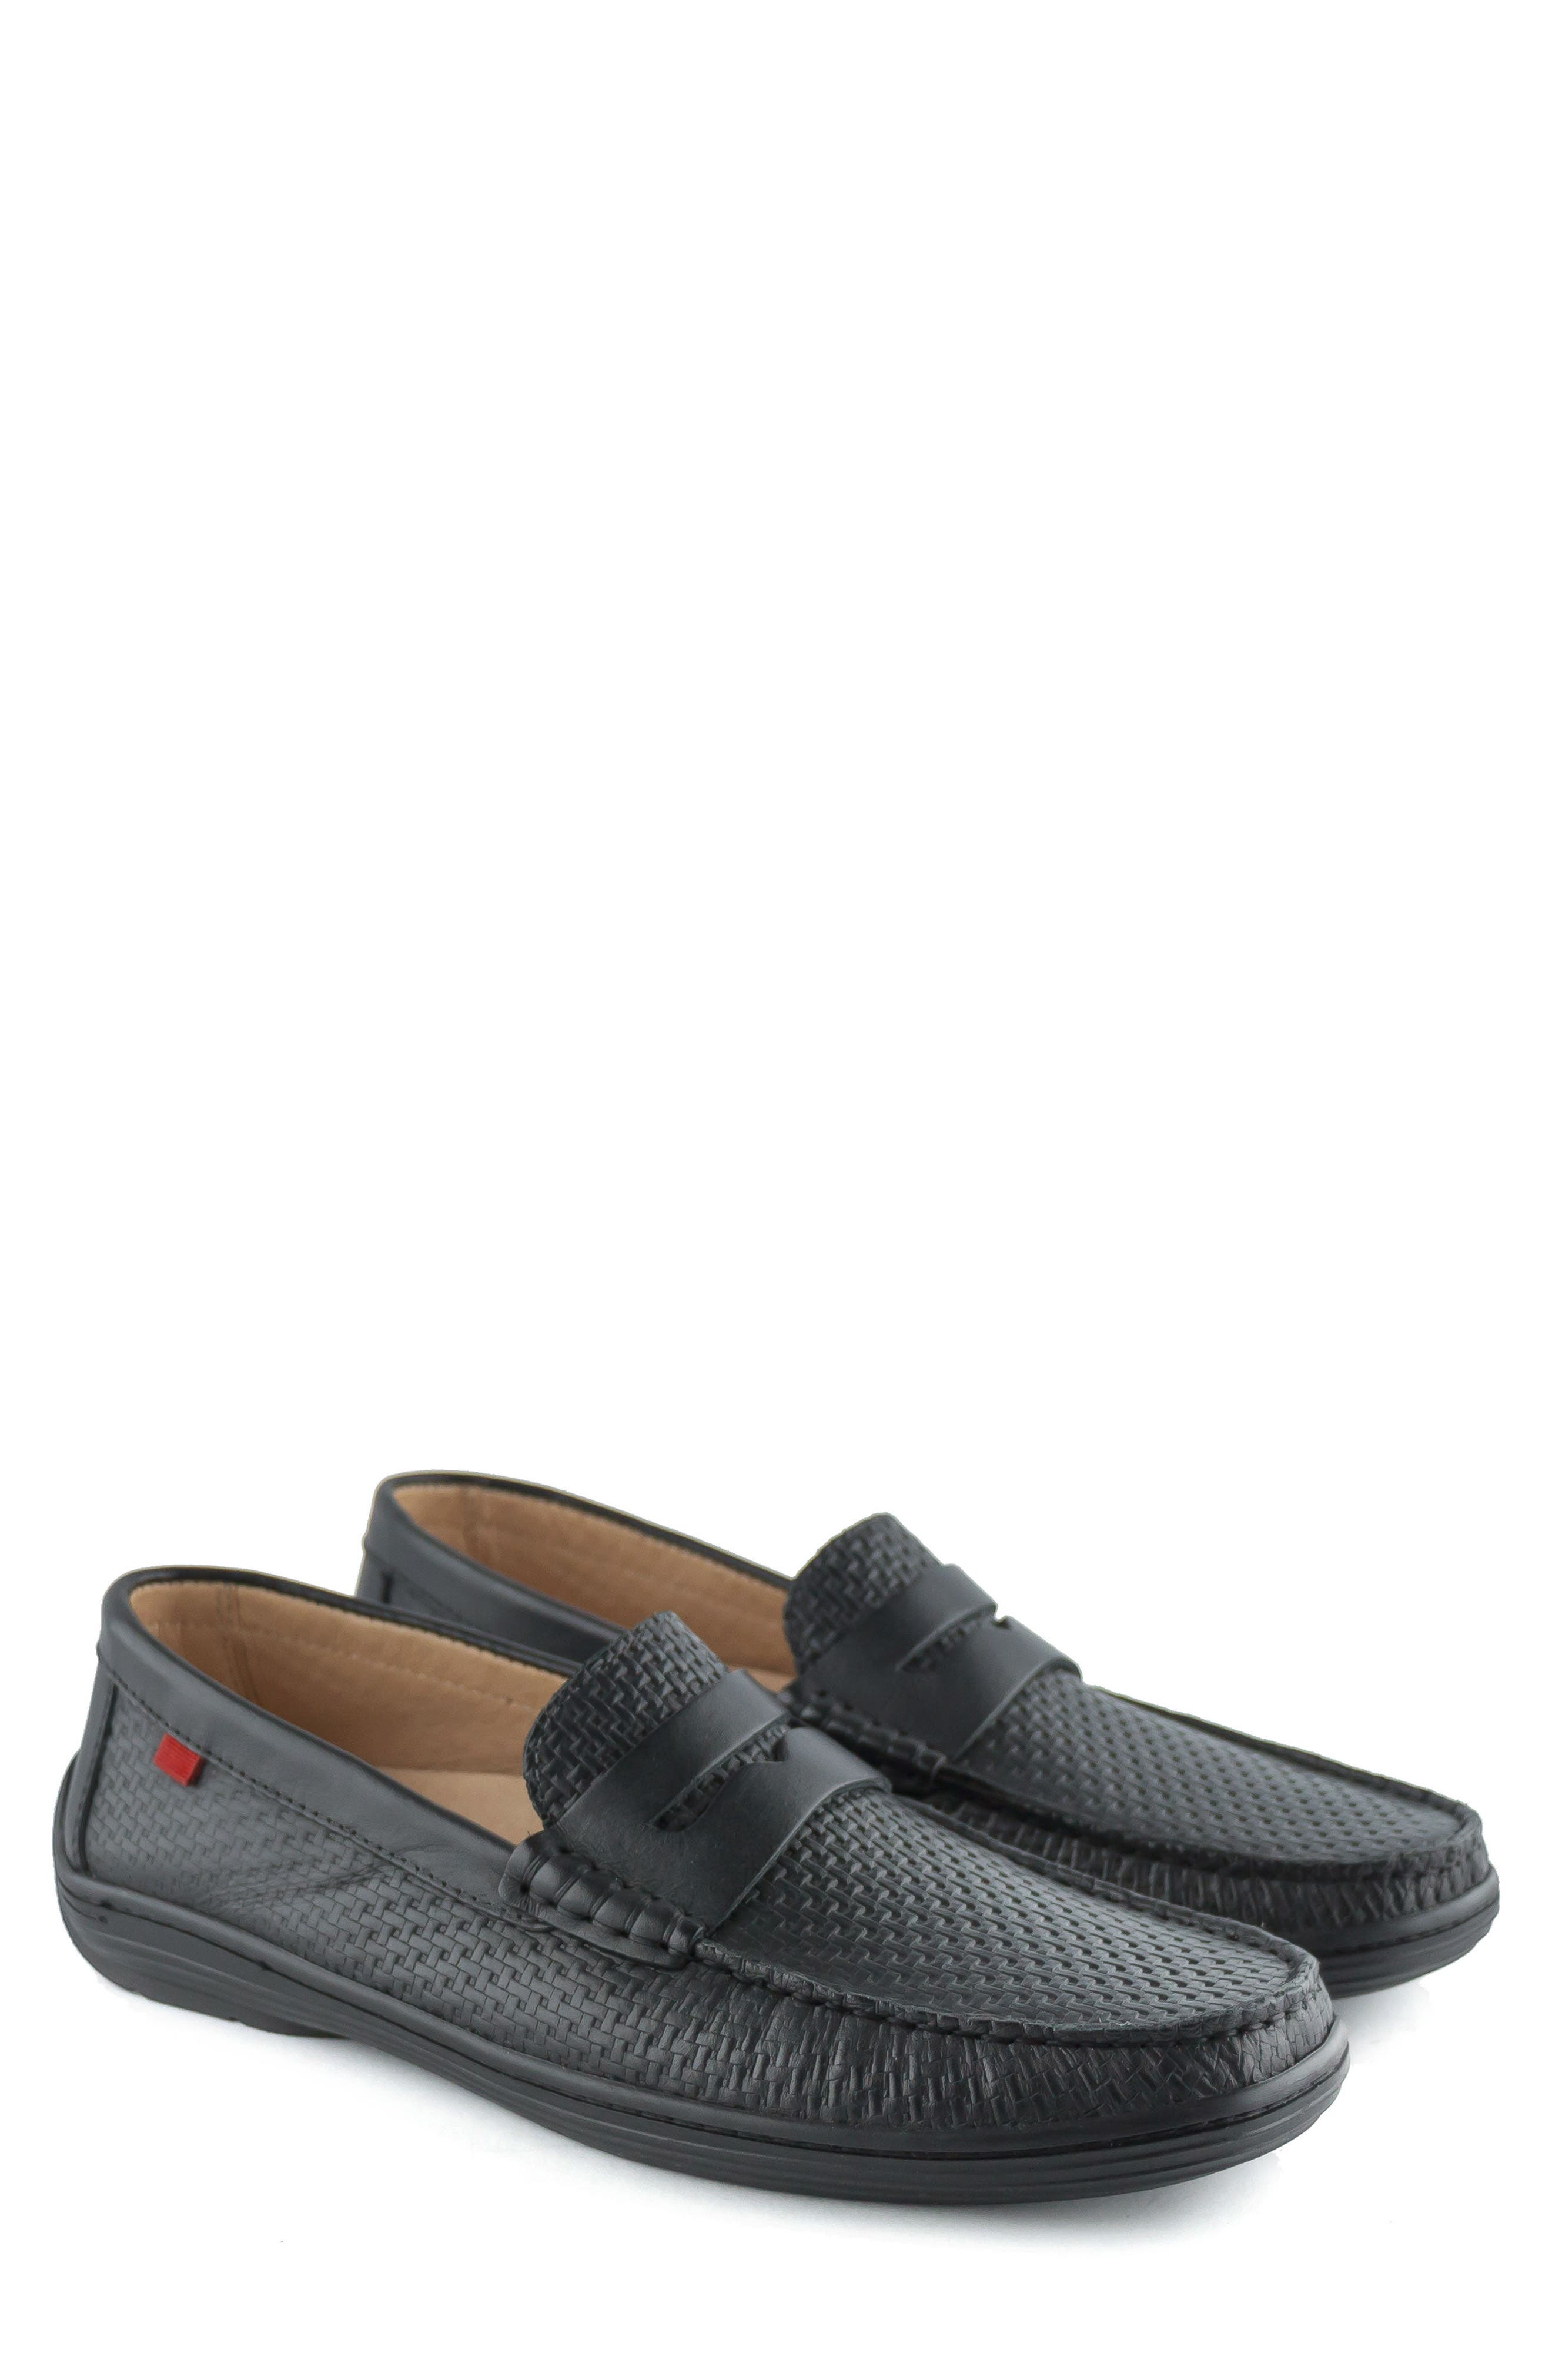 Atlantic Penny Loafer,                             Alternate thumbnail 43, color,